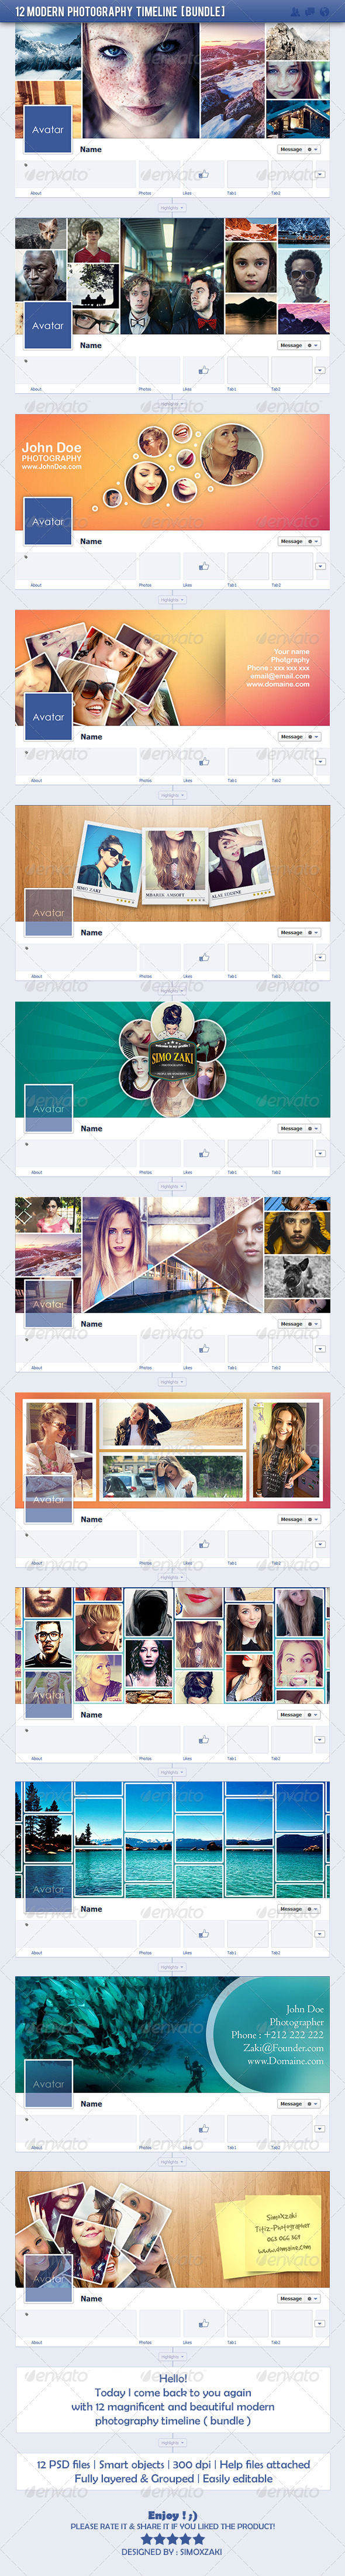 GraphicRiver 12 Modern Photography Timeline Bundle 8120161